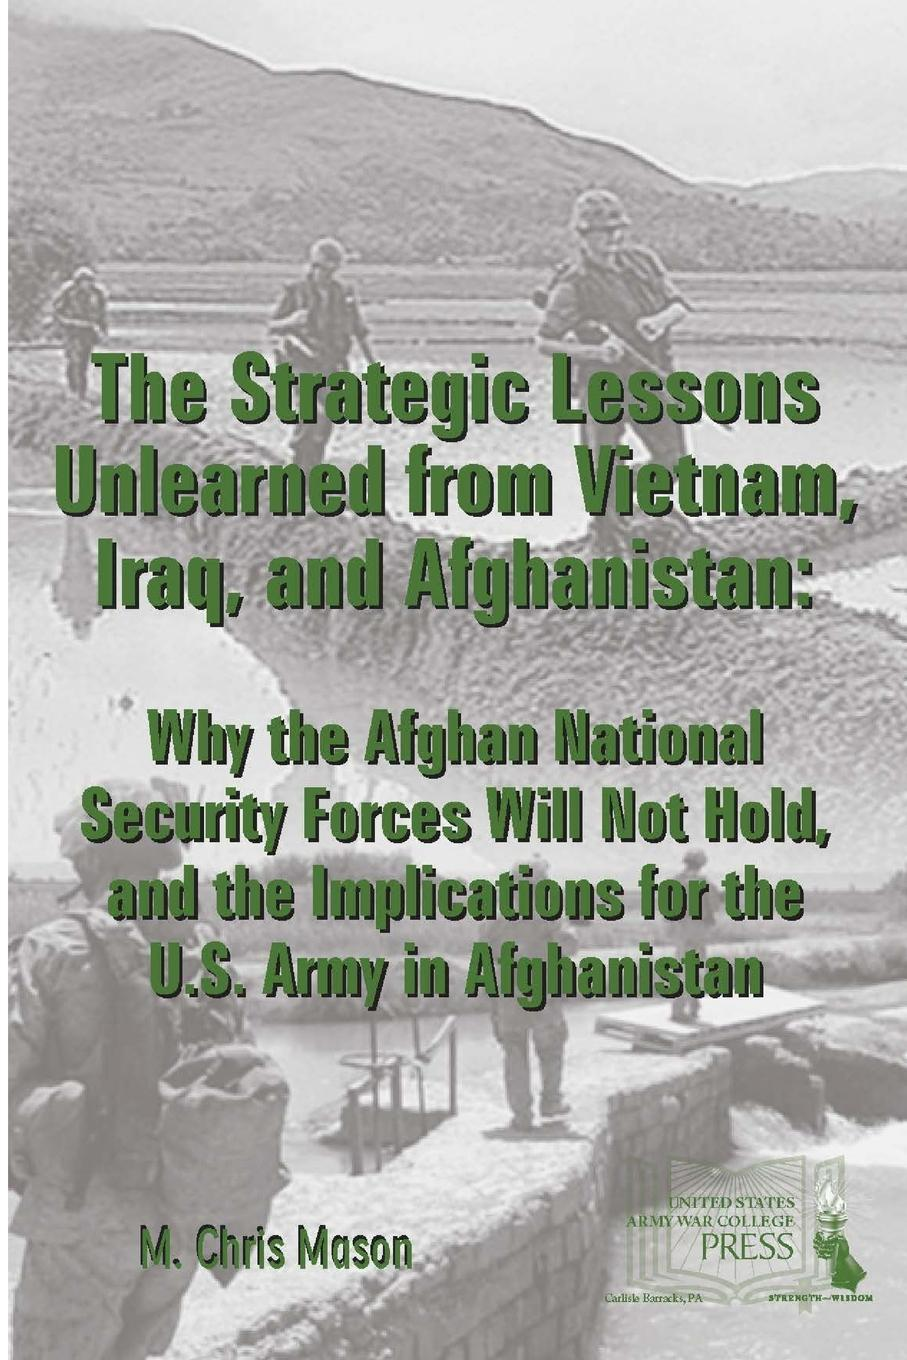 M. Chris Mason, Strategic Studies Institute, U.S. Army War College THE STRATEGIC LESSONS UNLEARNED FROM VIETNAM, IRAQ, AND AFGHANISTAN. Why the Afghan National Security Forces Will Not Hold, and the Implications for the U.S. Army in Afghanistan